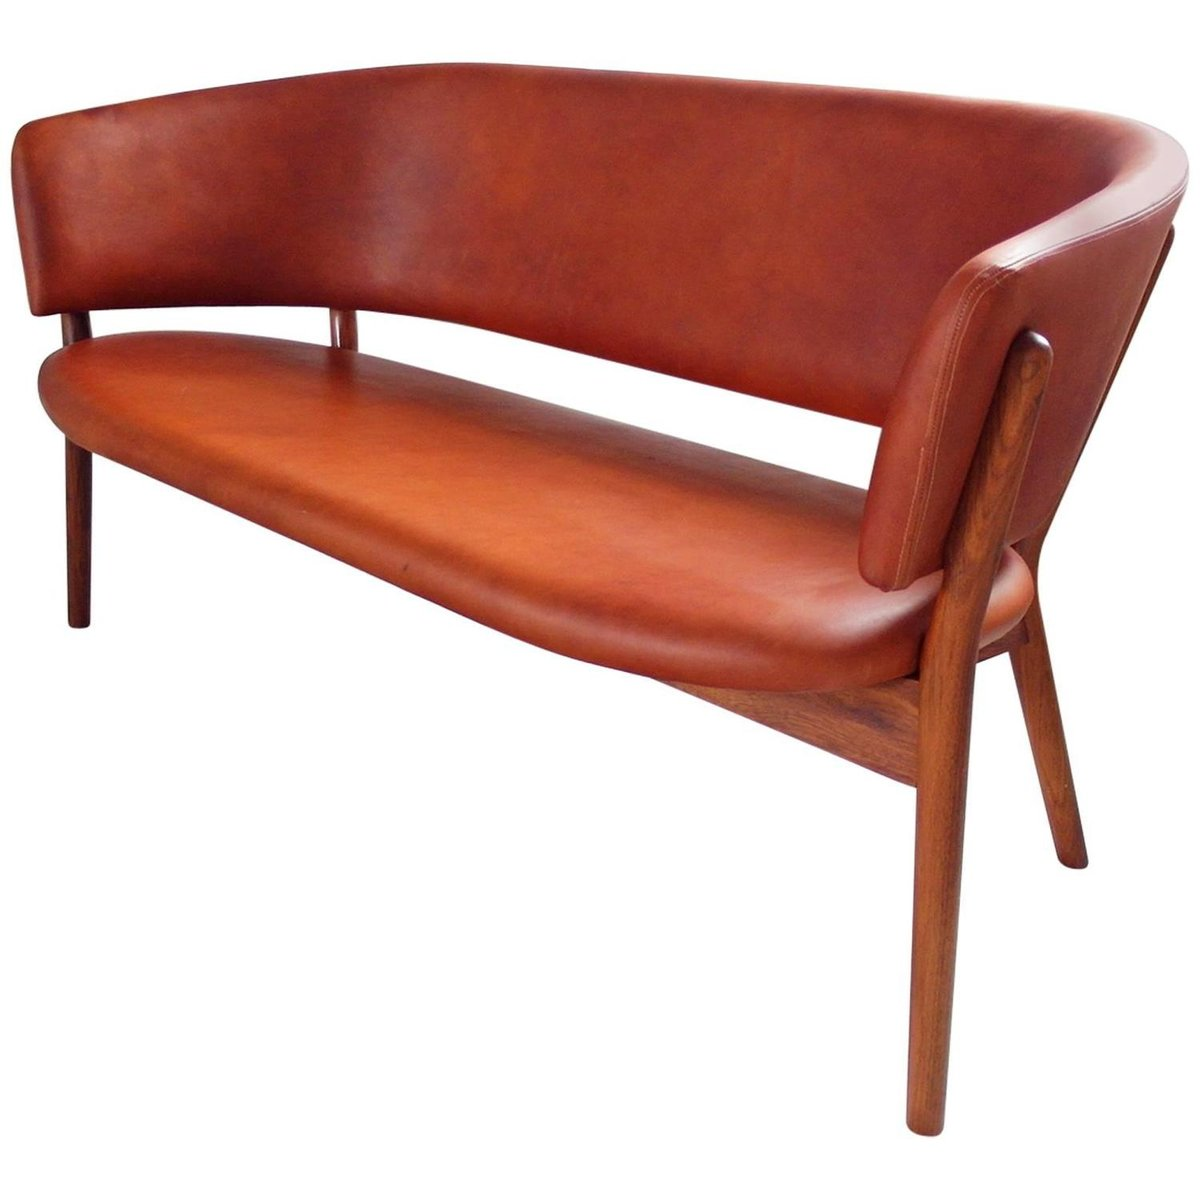 mid century nd82 shell sofa by nanna ditzel for snedkergaarden for sale at pamono. Black Bedroom Furniture Sets. Home Design Ideas